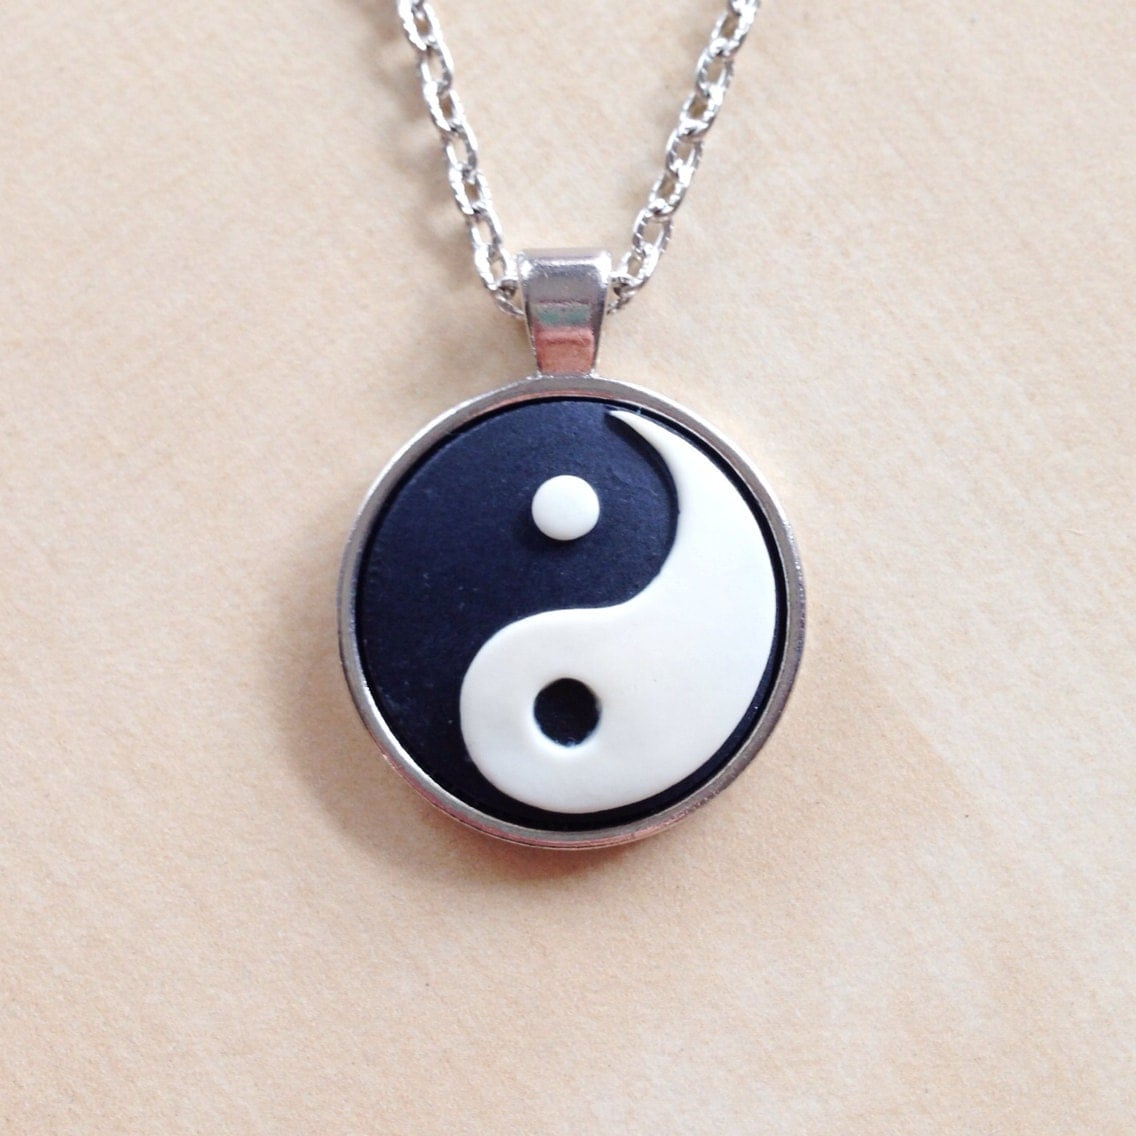 yin yang necklace shiny silver pendant bezel 25mm resin